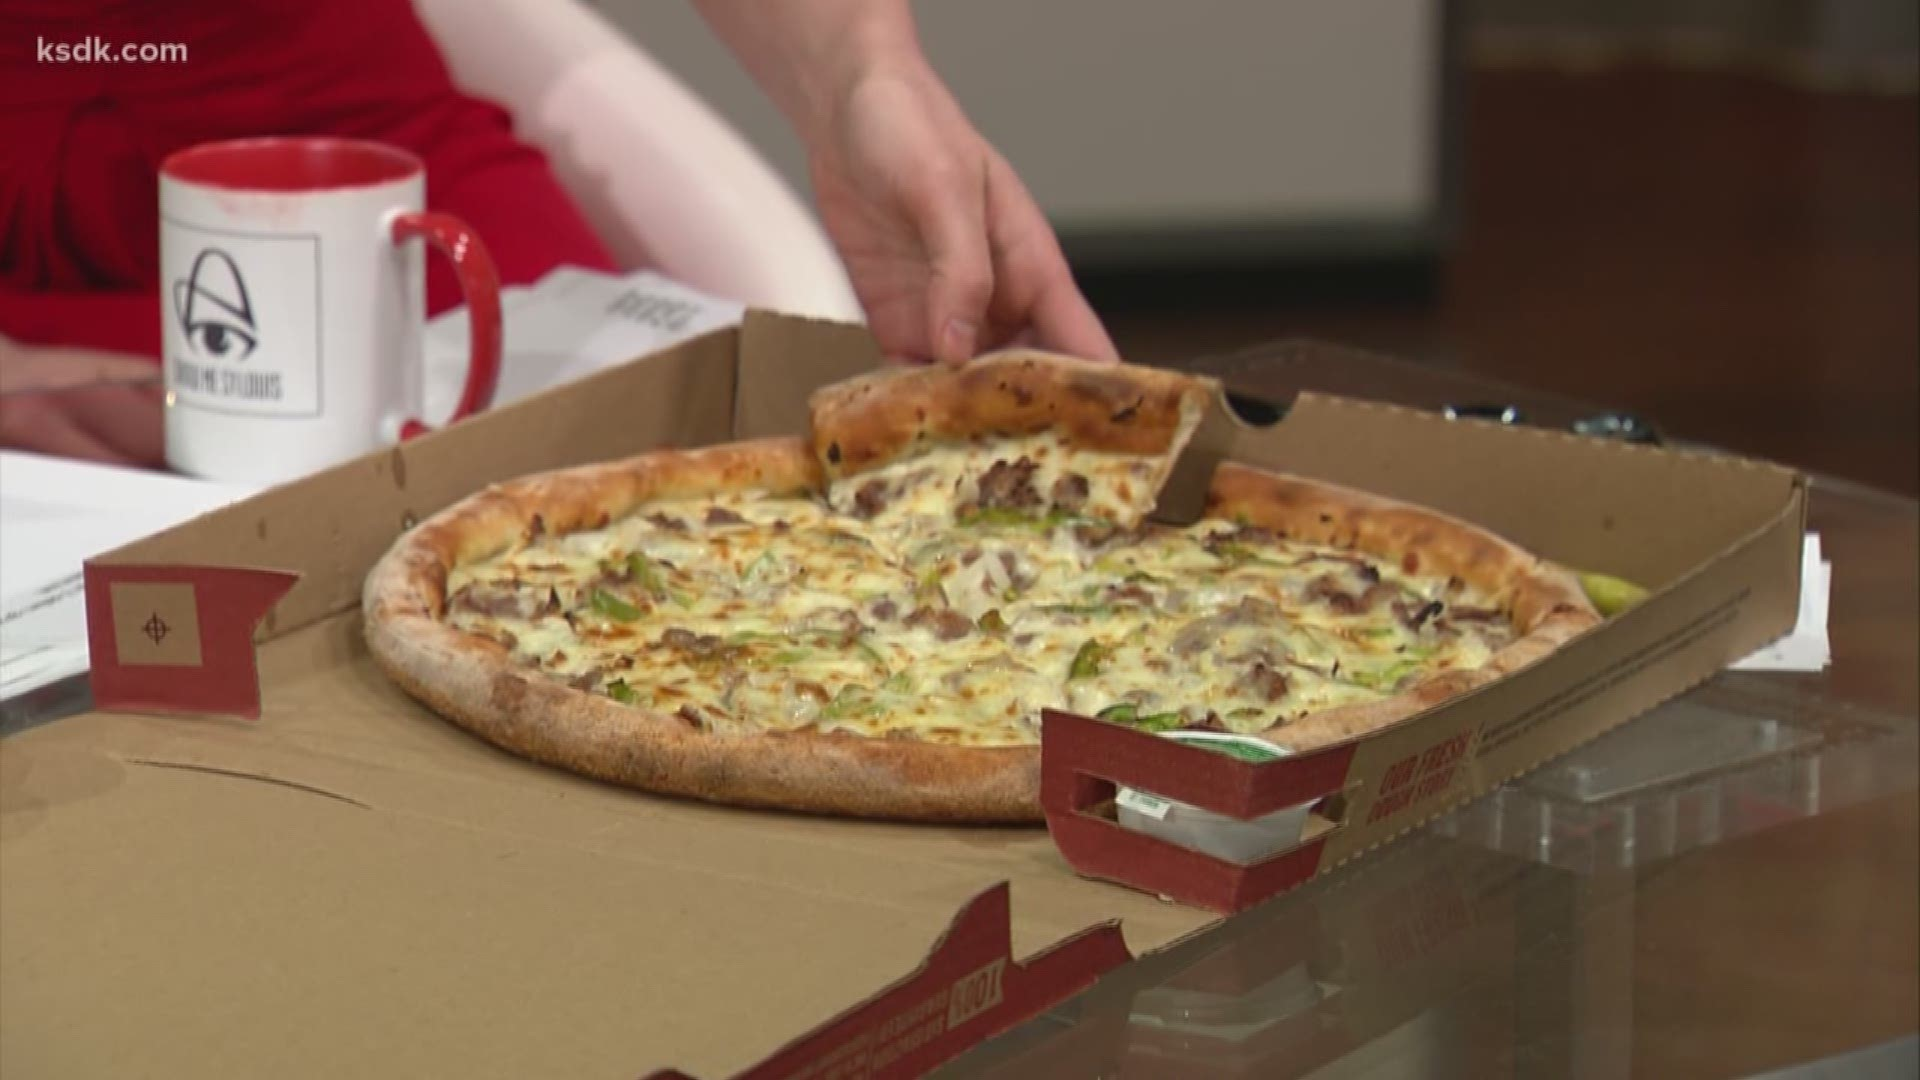 Papa John S Releases New Pizza Flavor Just In Time For The Big Game Ksdk Com